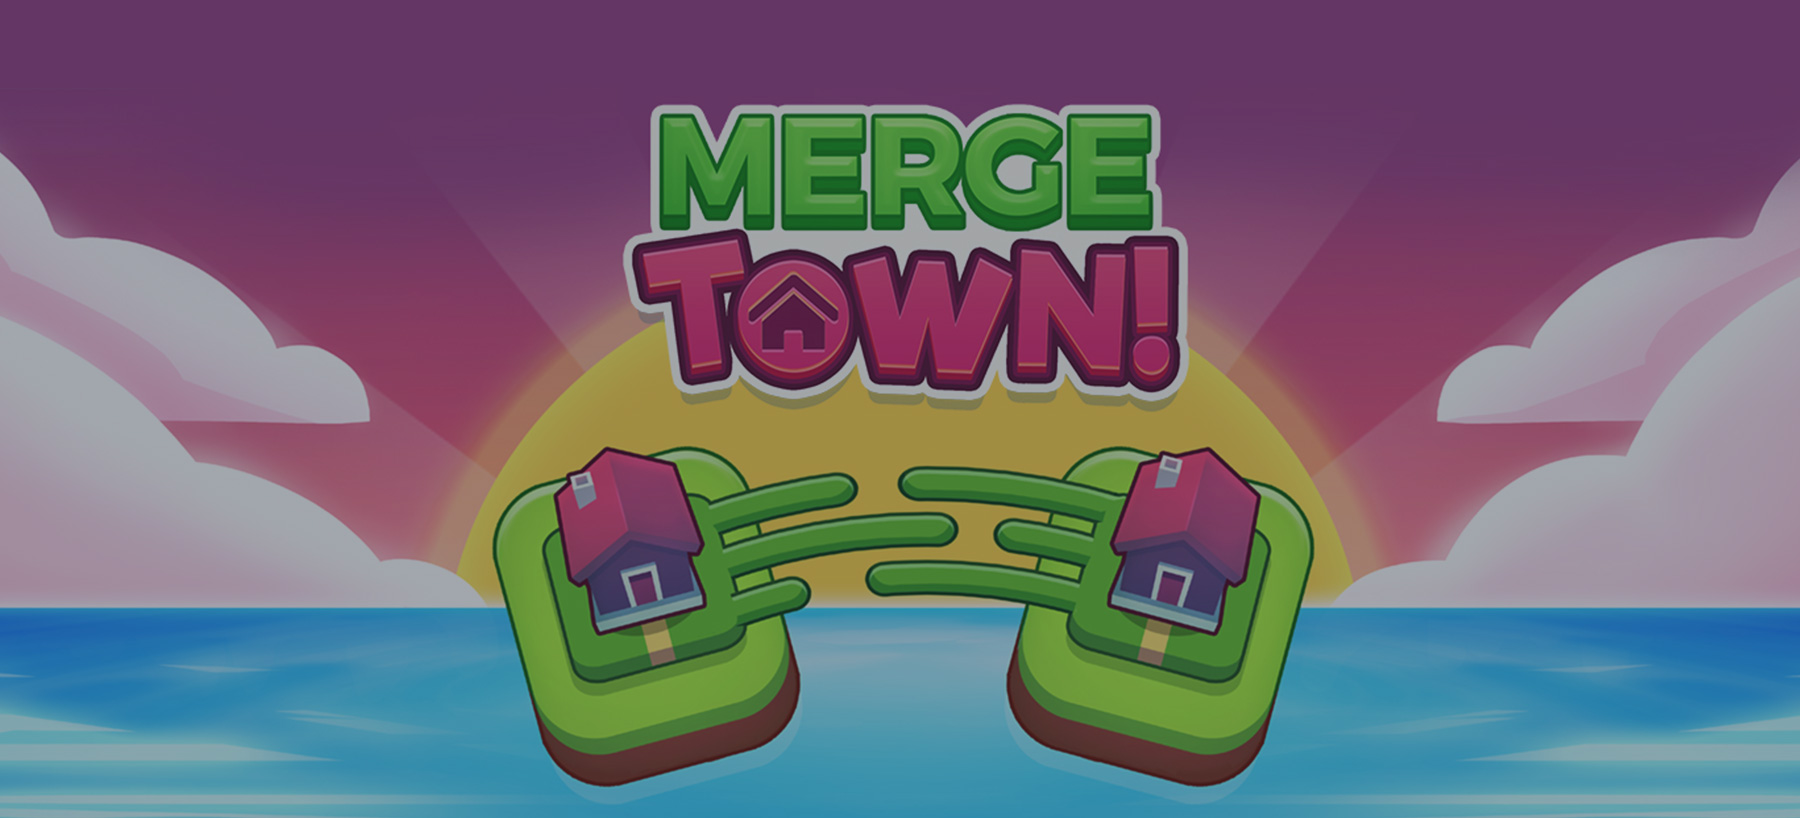 Merge Town! Hero Image